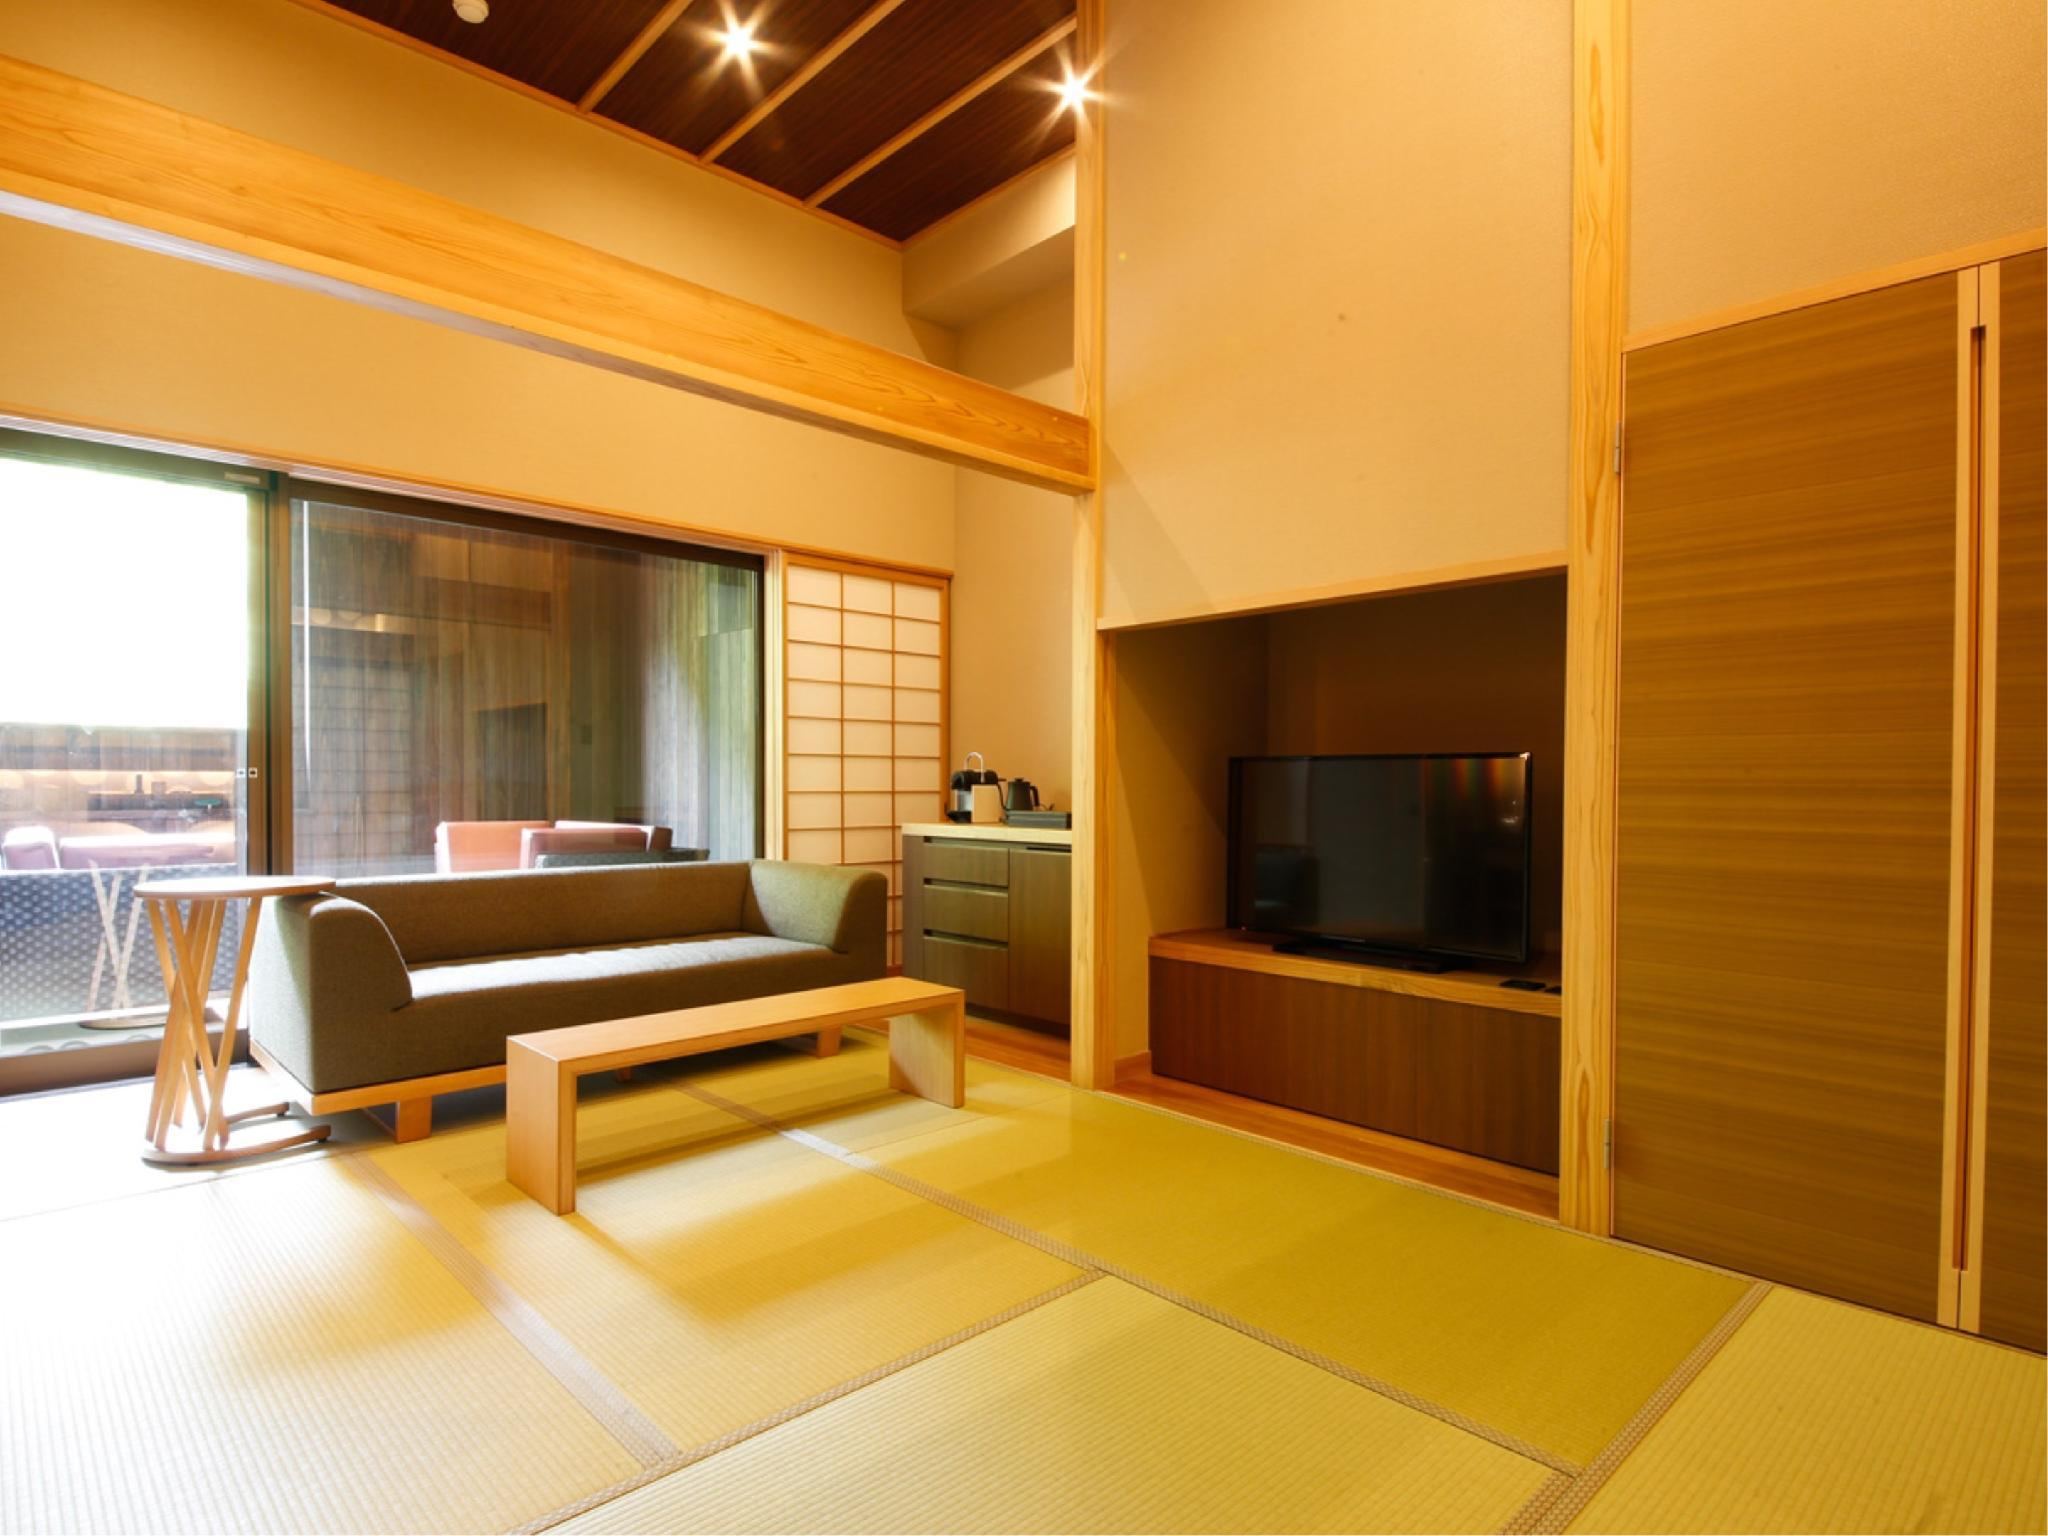 和洋室房E - 有露天Spa浴池 (Japanese Western Style Room Type E with Open-Air Spa Bath)